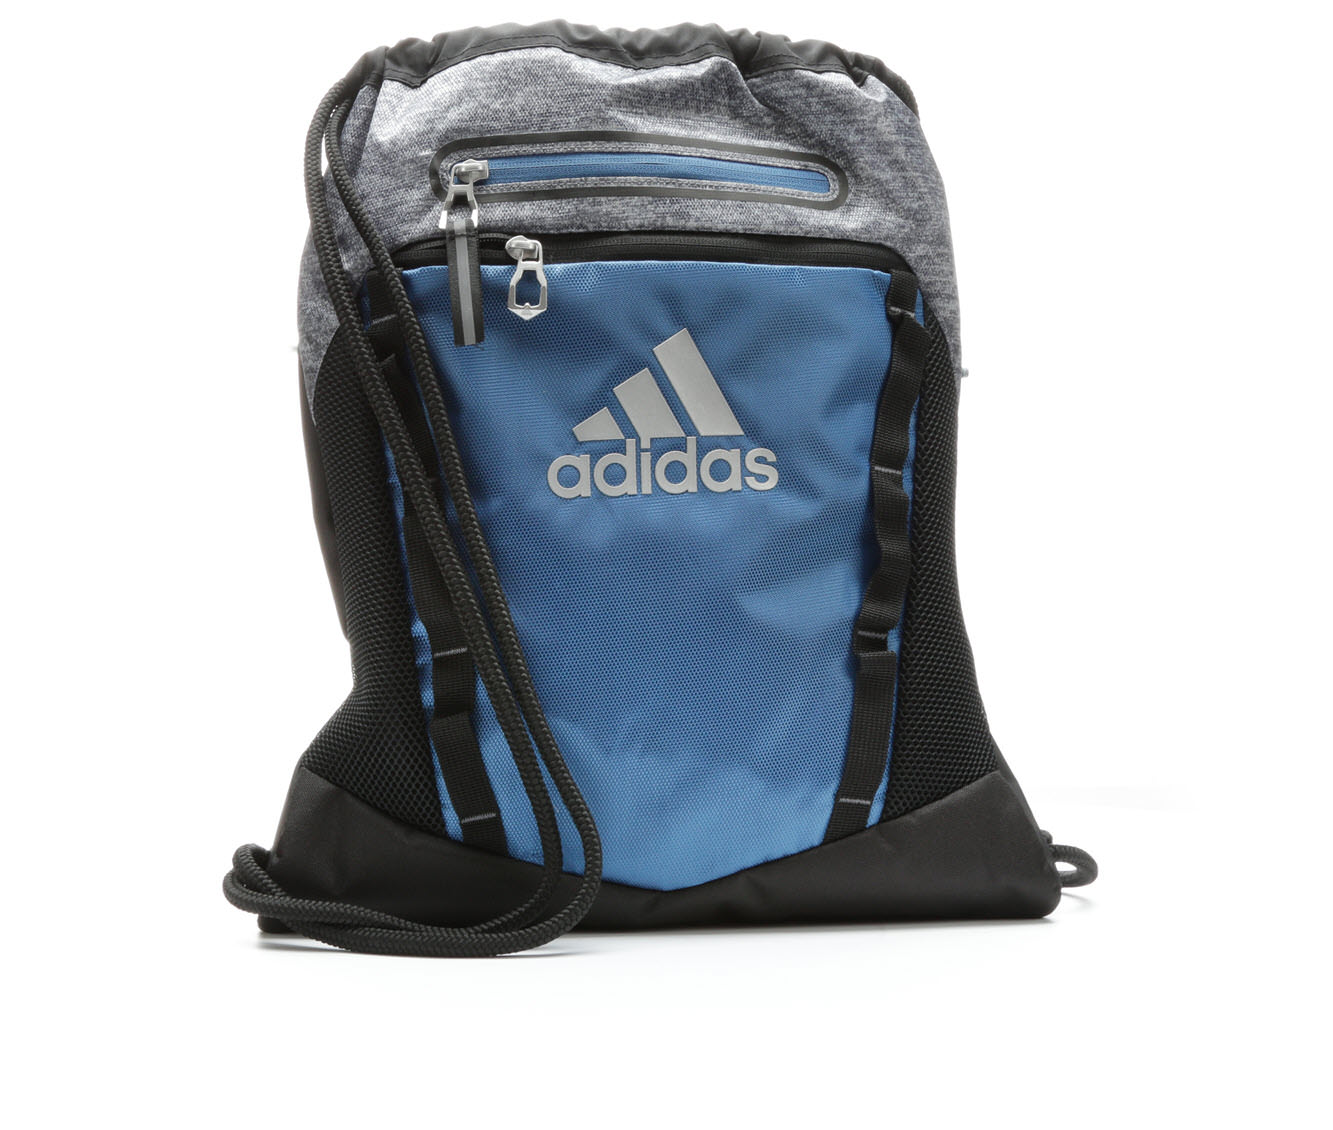 Adidas Rumble Sackpack (Blue - Size UNSZ) 1655308